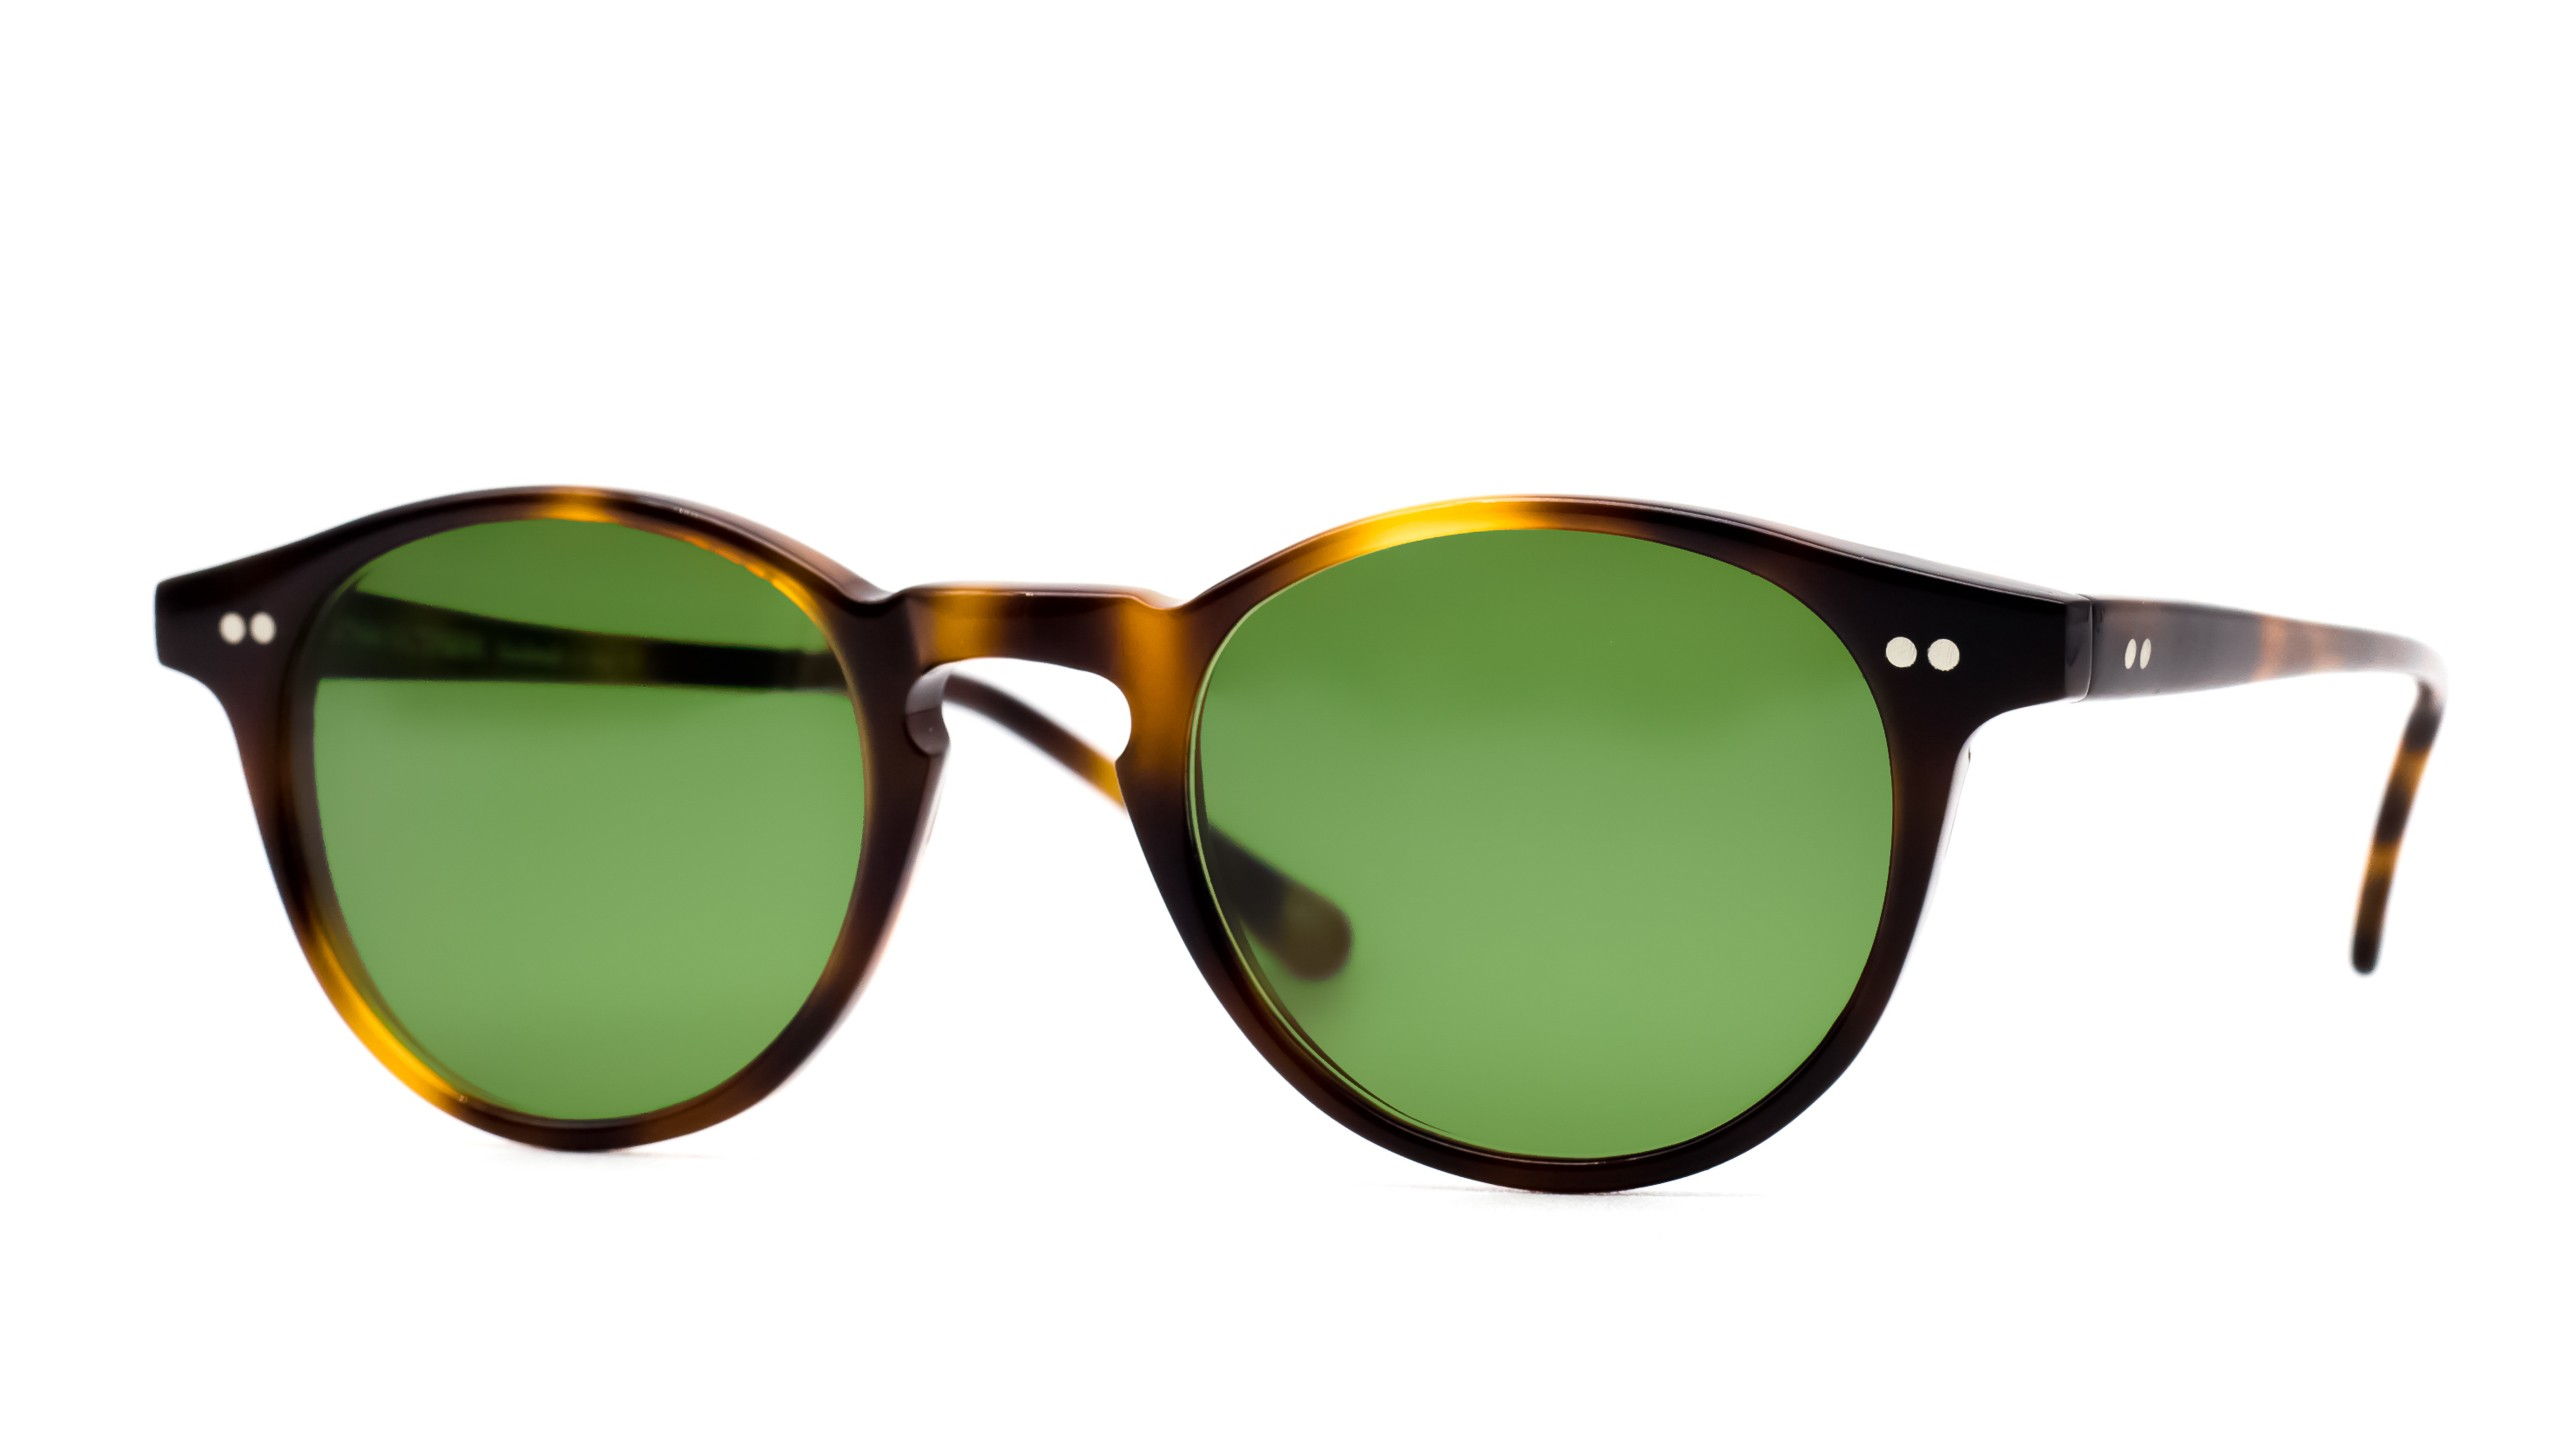 eyeglasses-Nathan-Kaltermann-made-in-Italy-Andrew-C03-Sole2